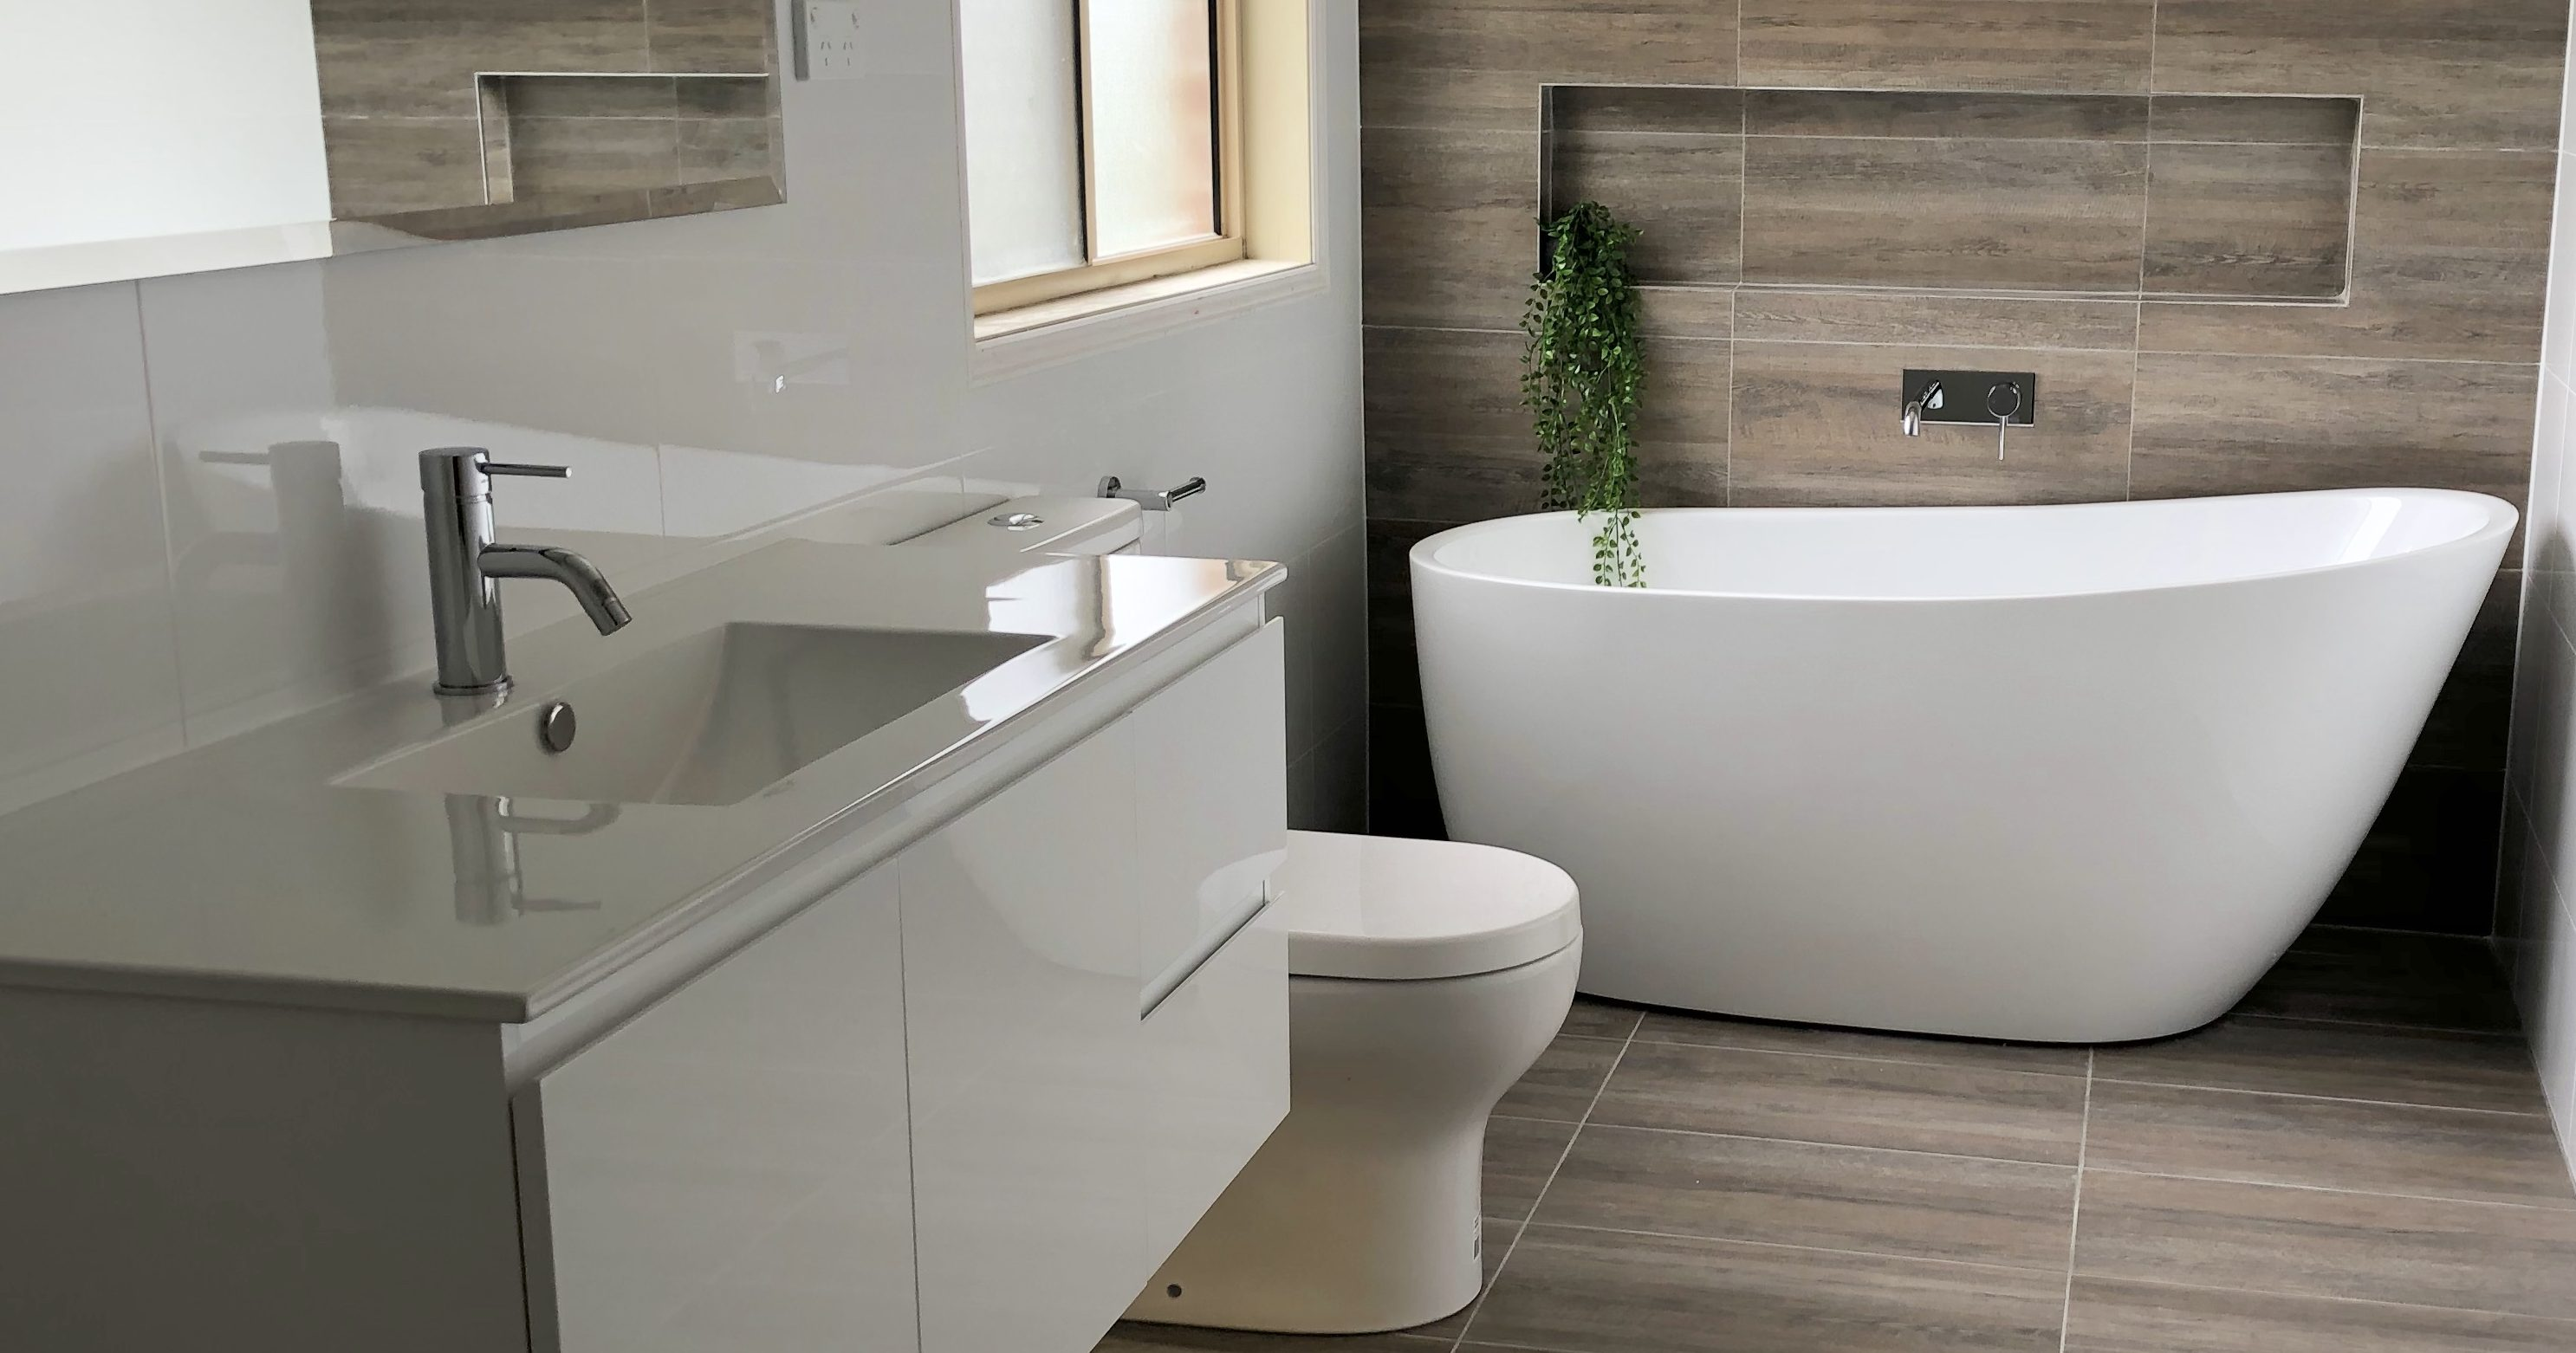 Stunnning freestanding bath, wall hung vanity and feature wall - bathroom renovation by Master Bathrooms & Kitchens